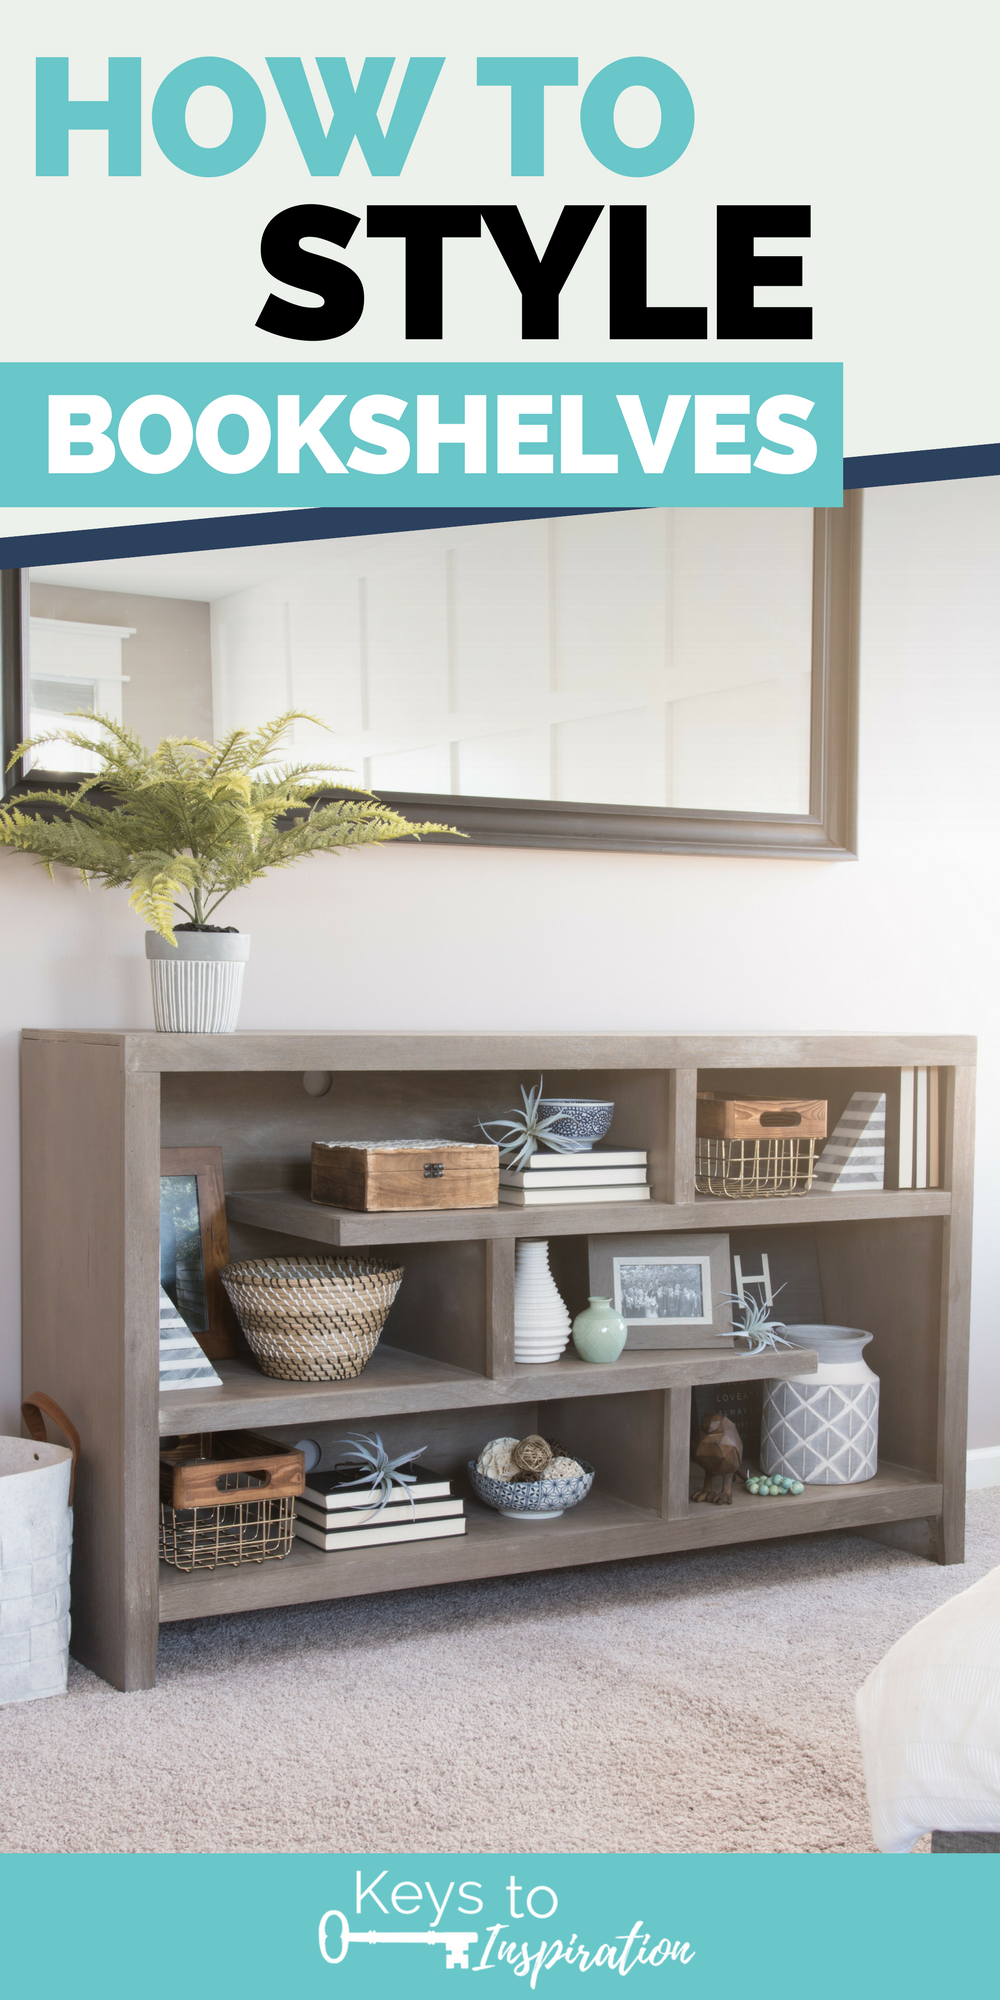 How to Style Bookshelves is part of Home Accessories Decor Shelves - How to style bookshelves  Tips, tricks, and ideas for decorating shelves and bookcases with more than just books  Make your shelves look intentionally decorated and put together